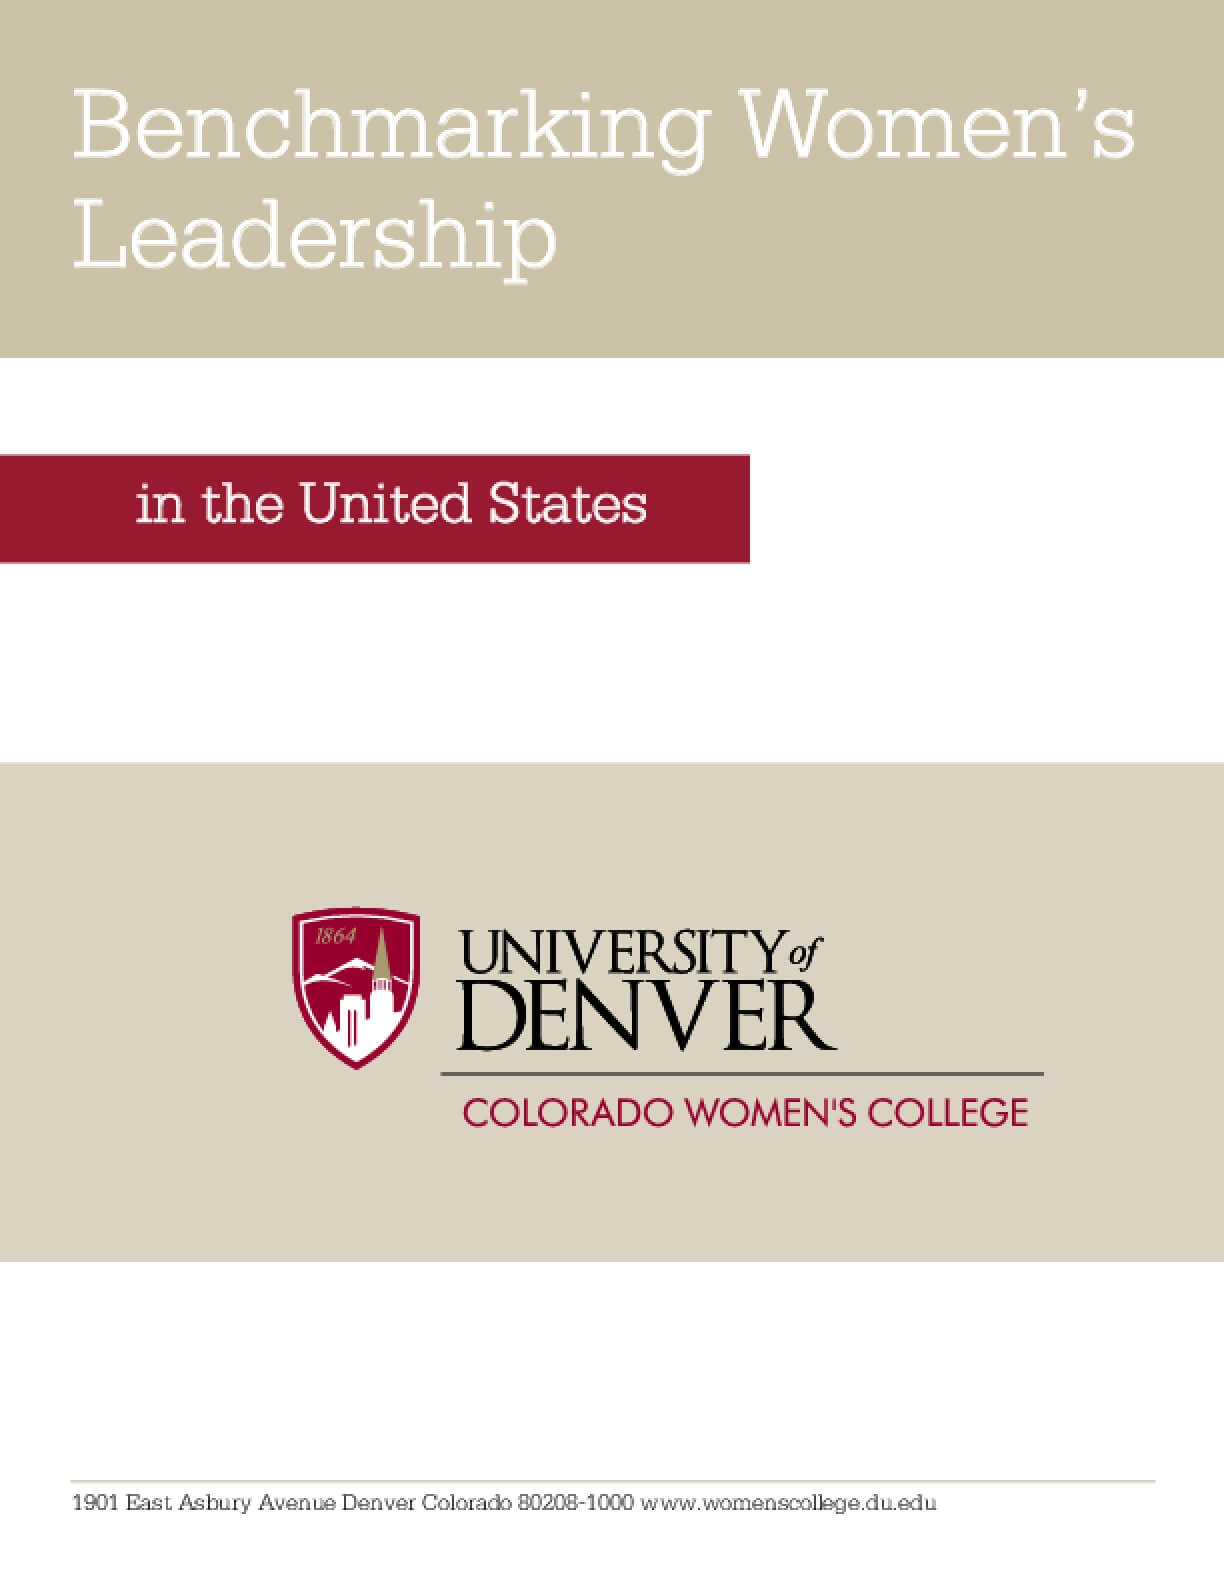 Benchmarking Women's Leadership in the United States